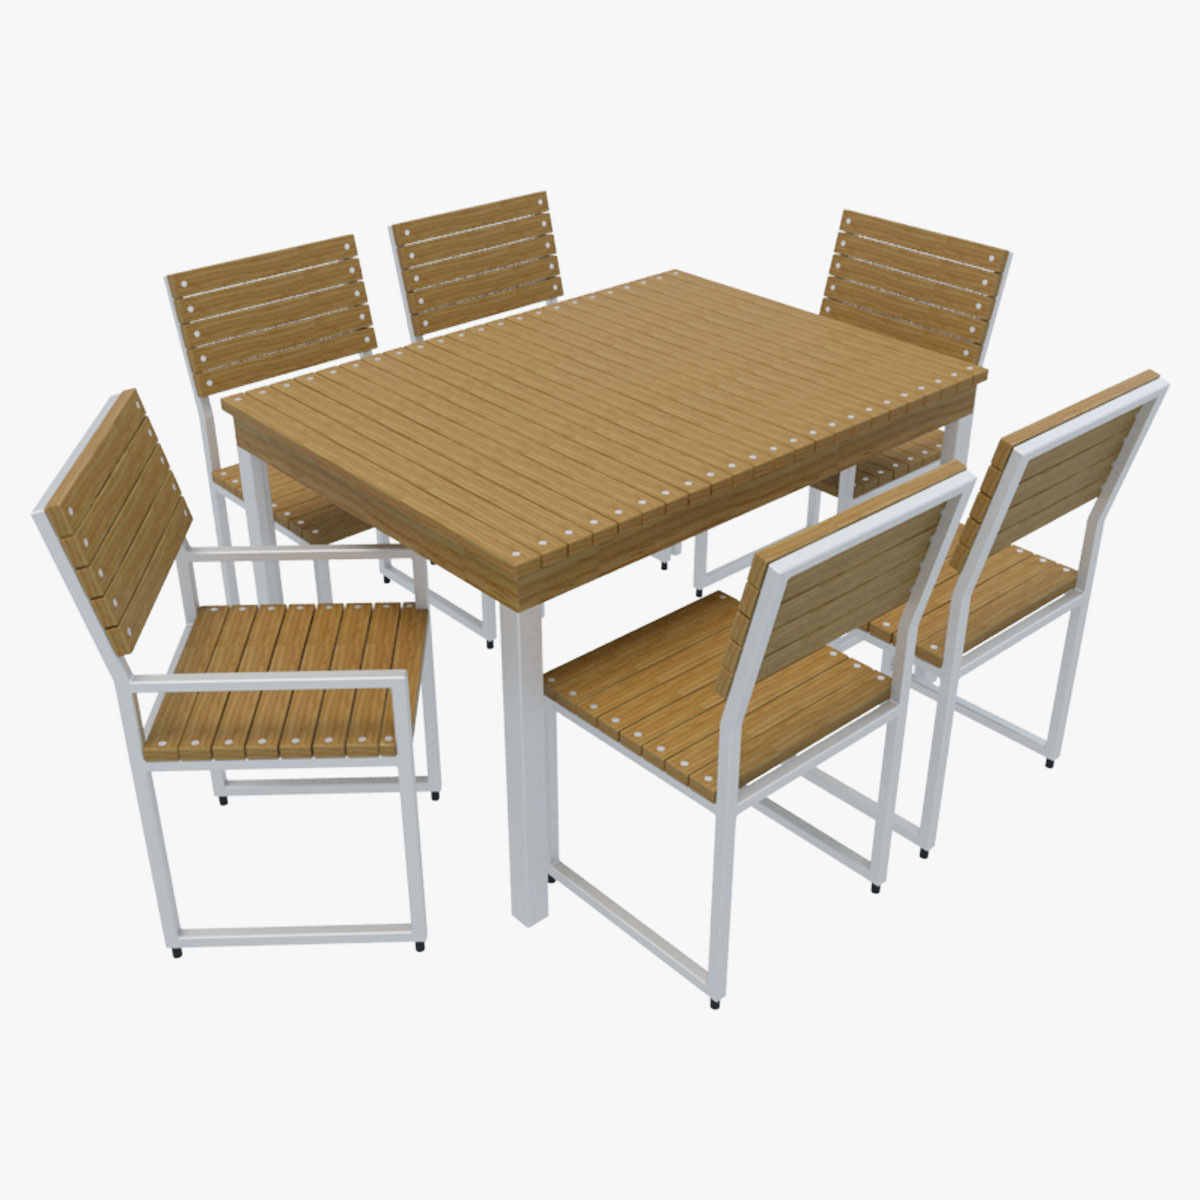 Outdoor furniture 2 3d model max obj 3ds fbx for Outdoor furniture 3d max